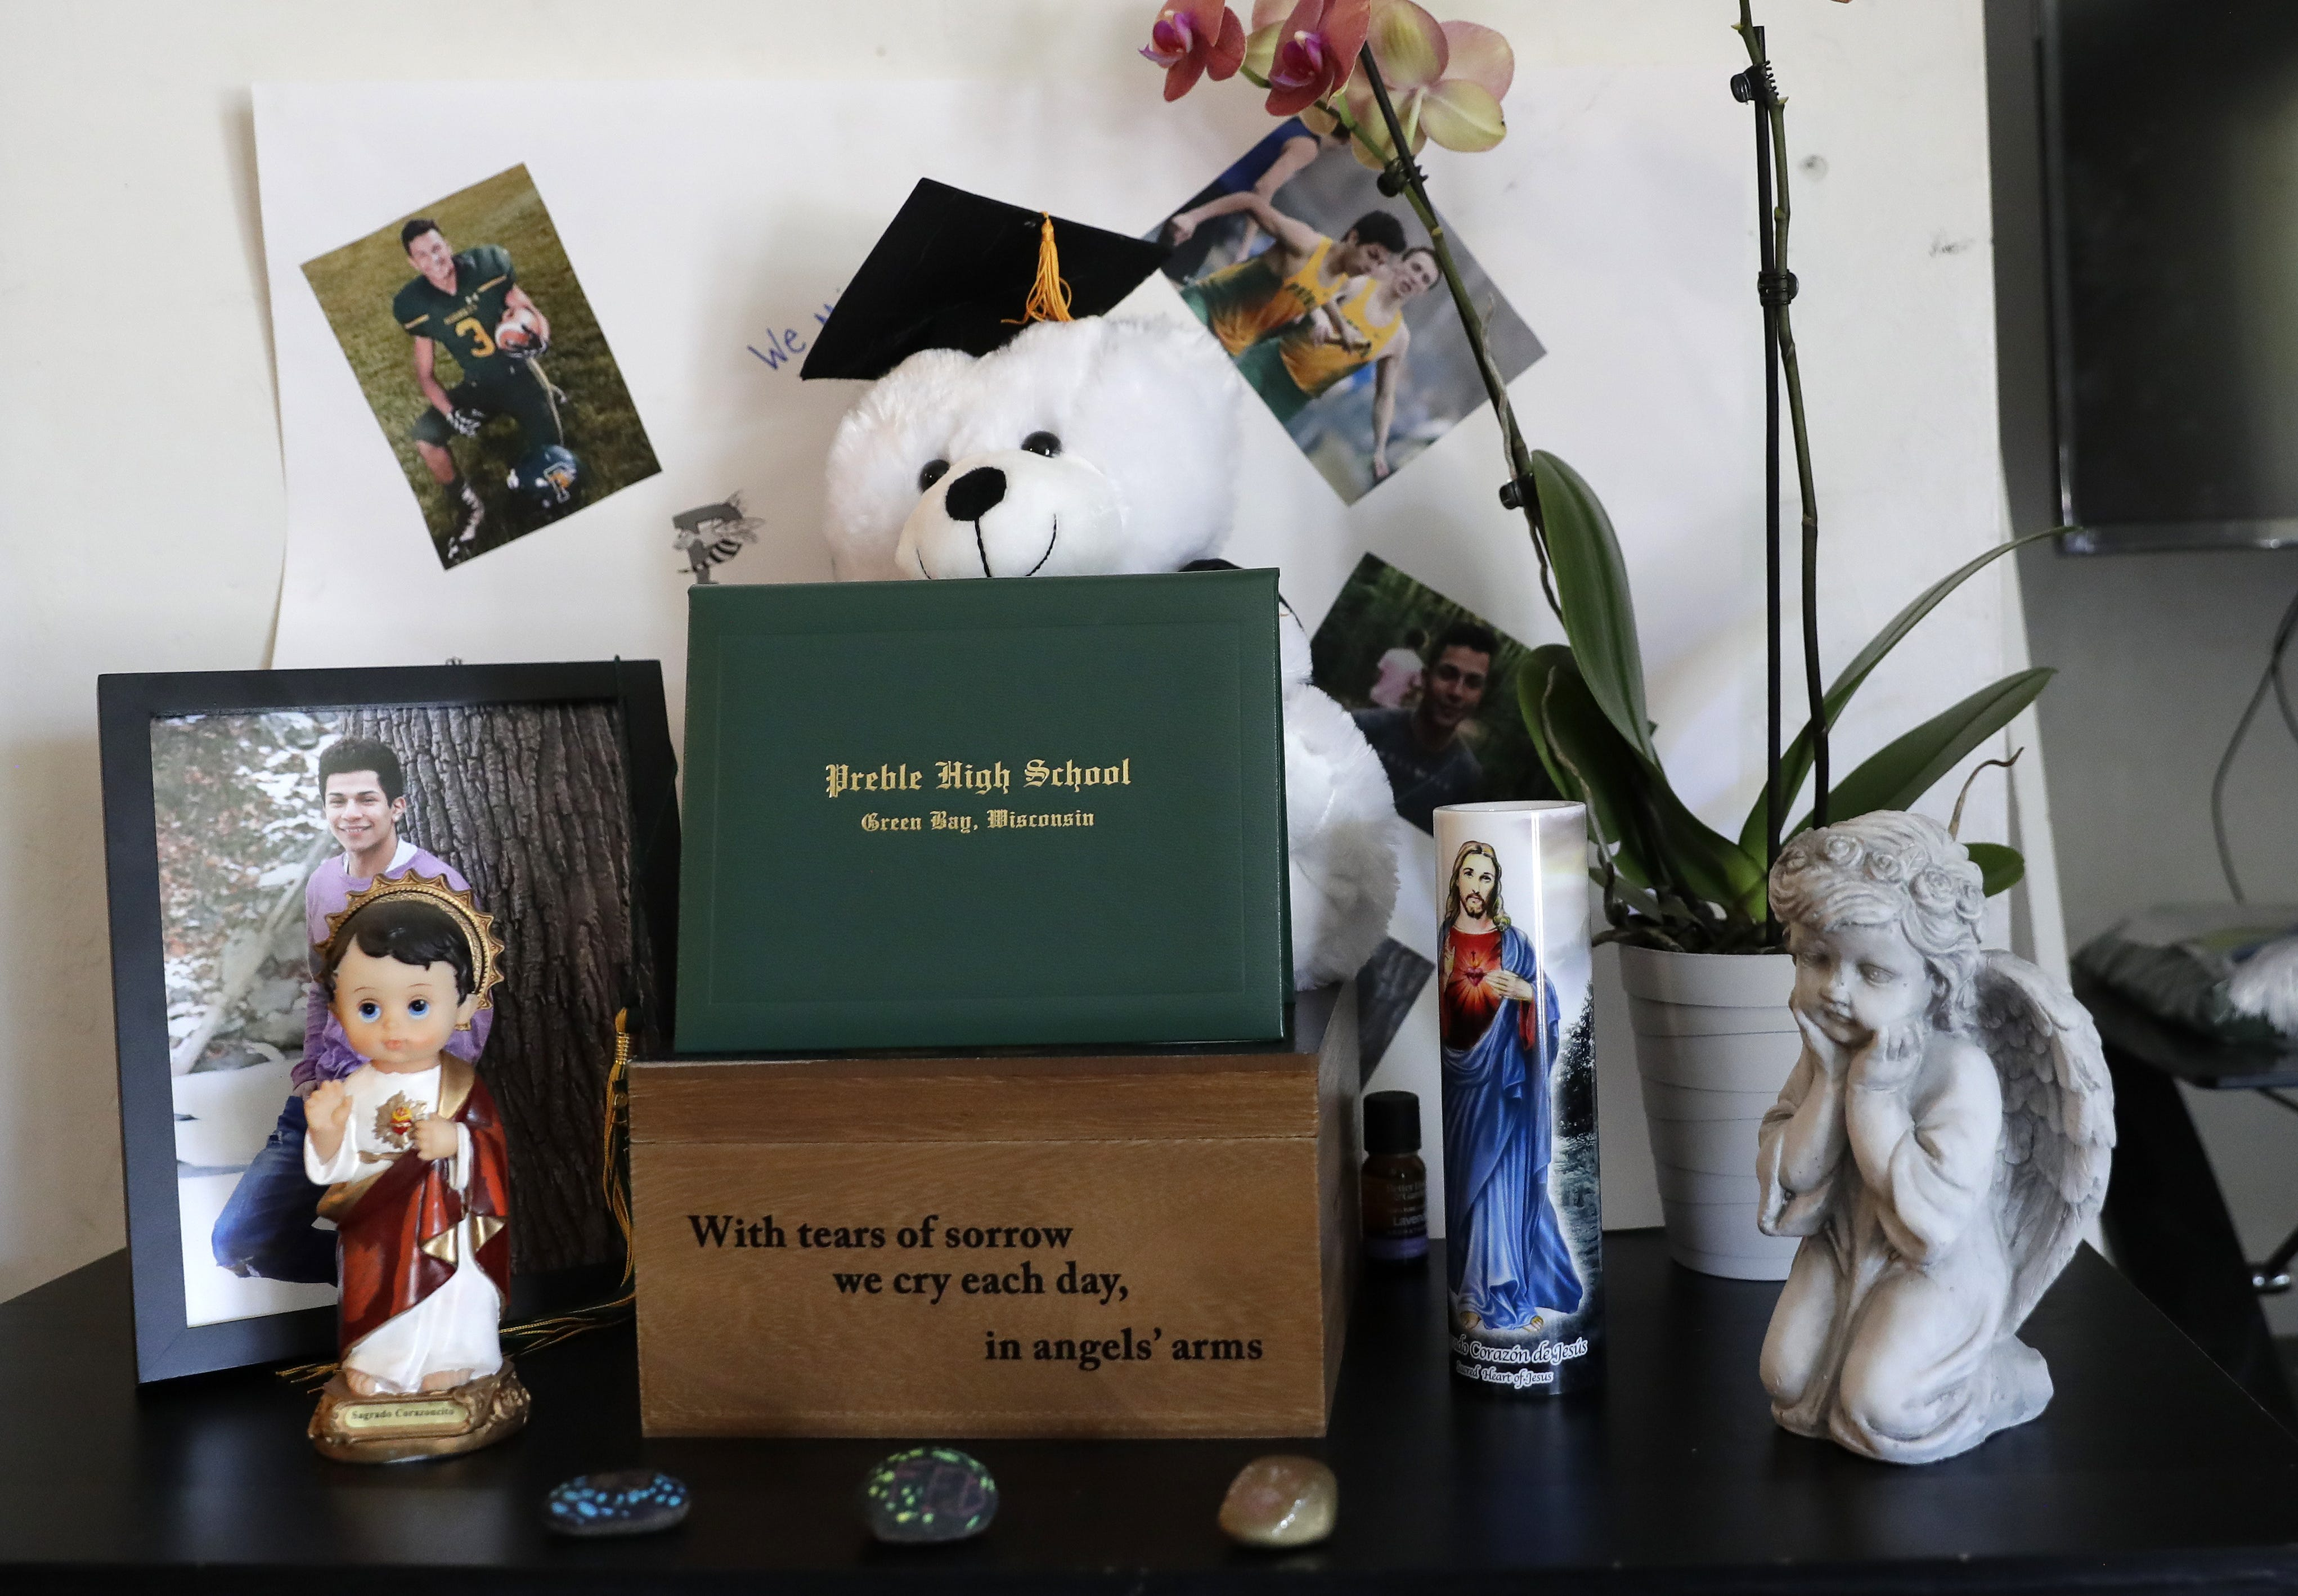 A honorary Preble High School diploma and other mementos for Federico Abarca Jr. sit on a table in his family's living room in Green Bay.